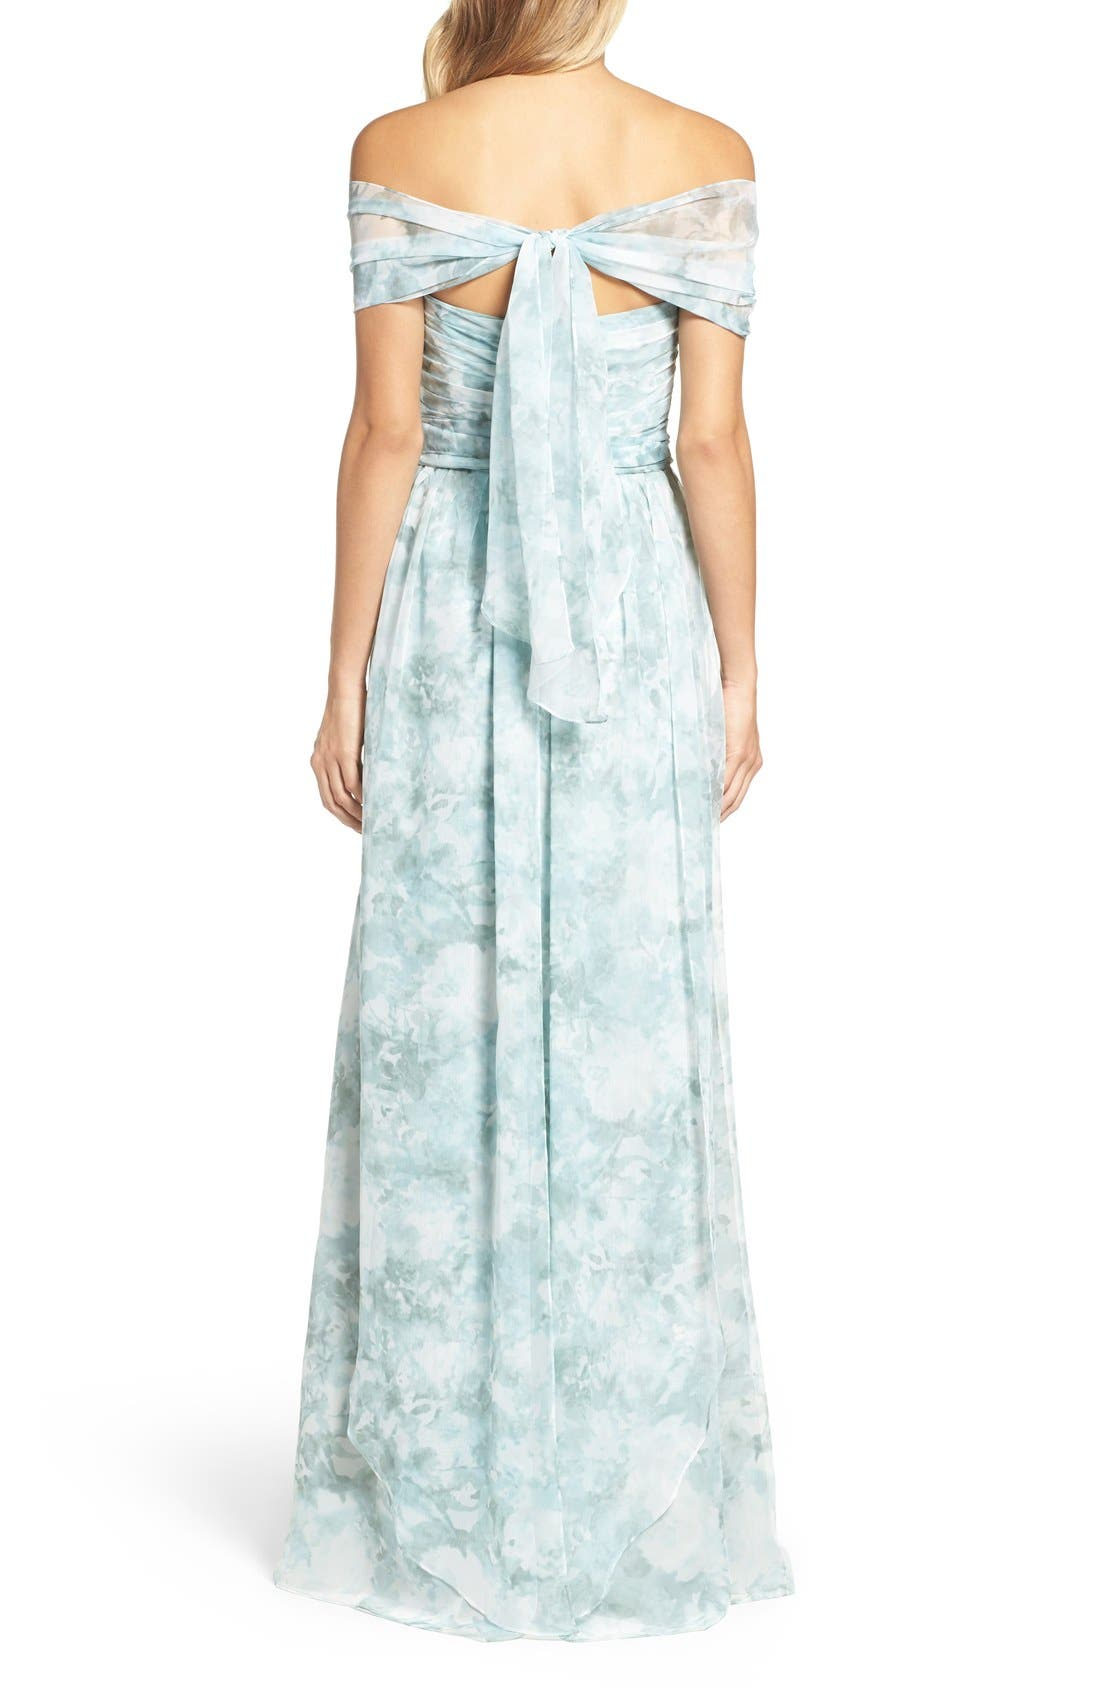 Nyla Floral Print Convertible Strapless Chiffon Gown,                             Alternate thumbnail 20, color,